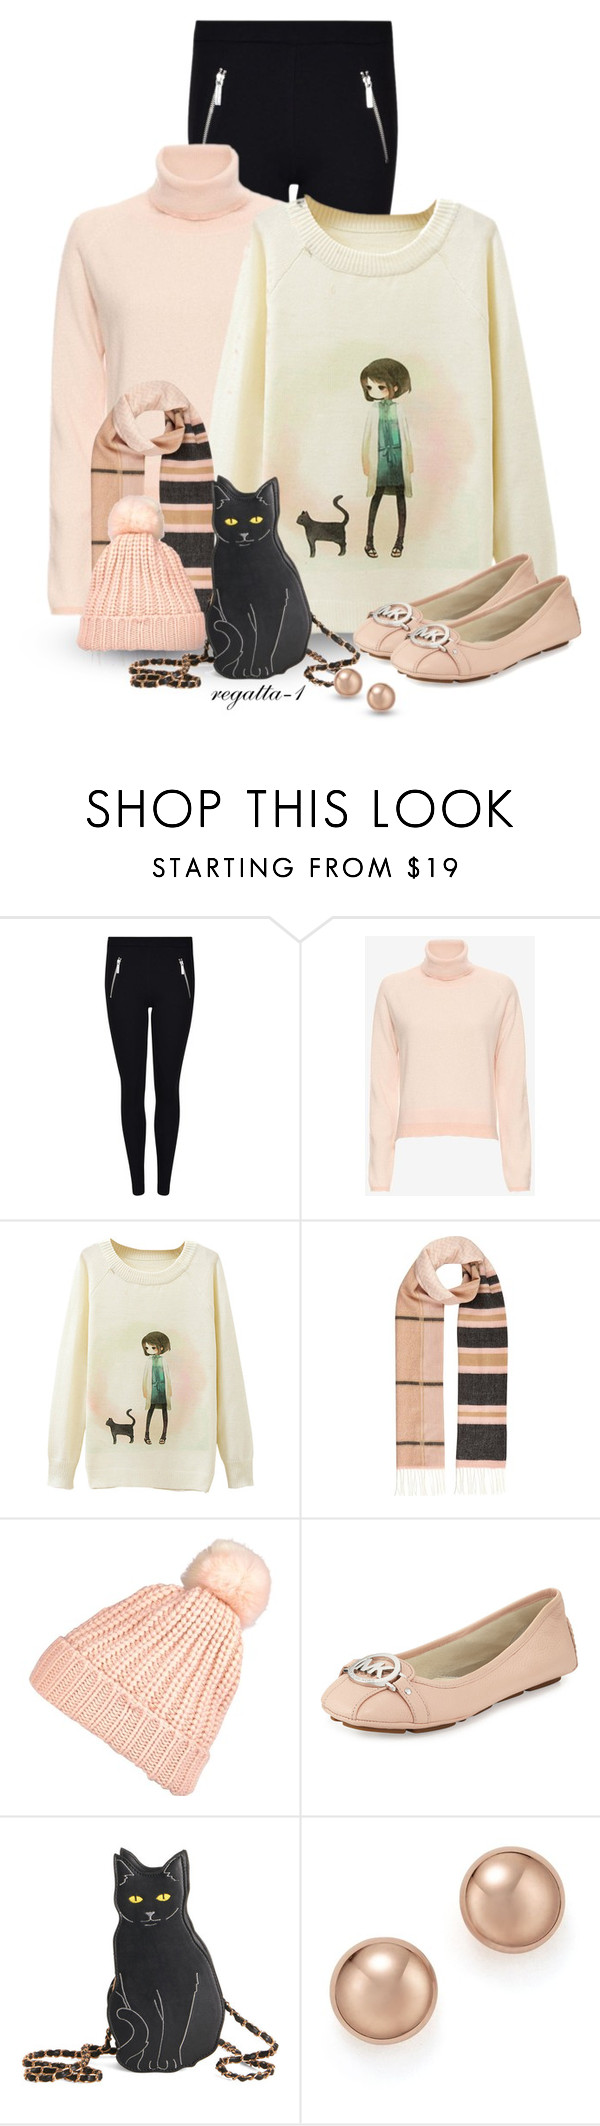 """""""Michael Kors Flats"""" by regatta-1 ❤ liked on Polyvore featuring 10 Crosby Derek Lam, River Island, MICHAEL Michael Kors, Bloomingdale's, michaelkors, flats, cats and polyvoreeditorial"""